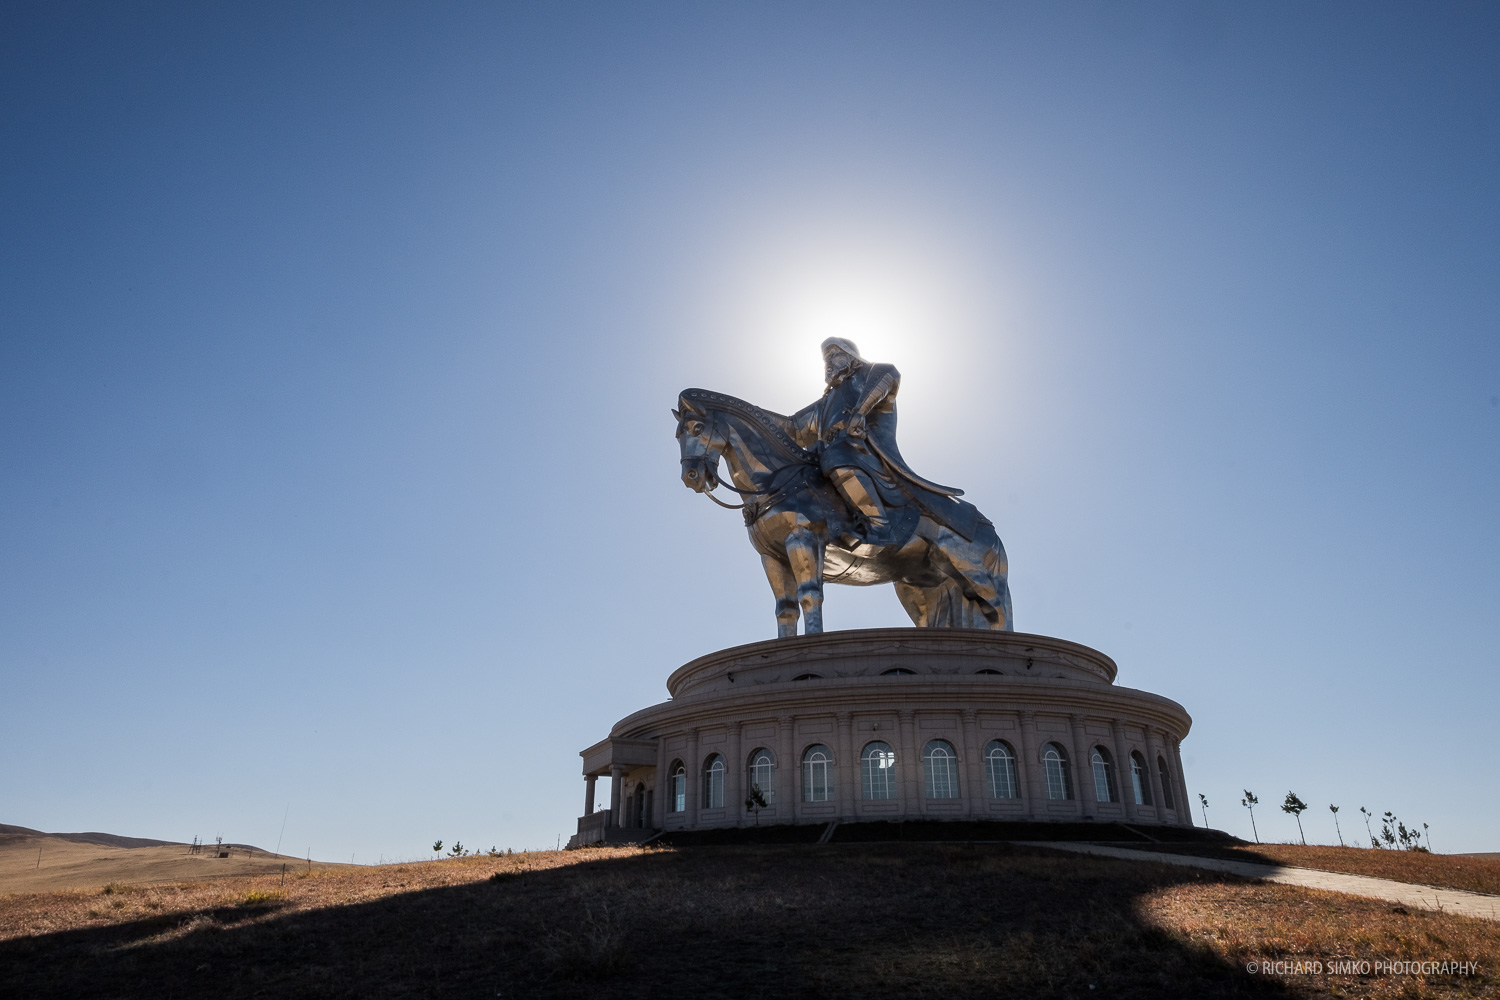 Chinggis Khaan Statue Complex about an hour drive from Ulaanbaatar. it is 40m high statue pointed towards direction of his birthplace.